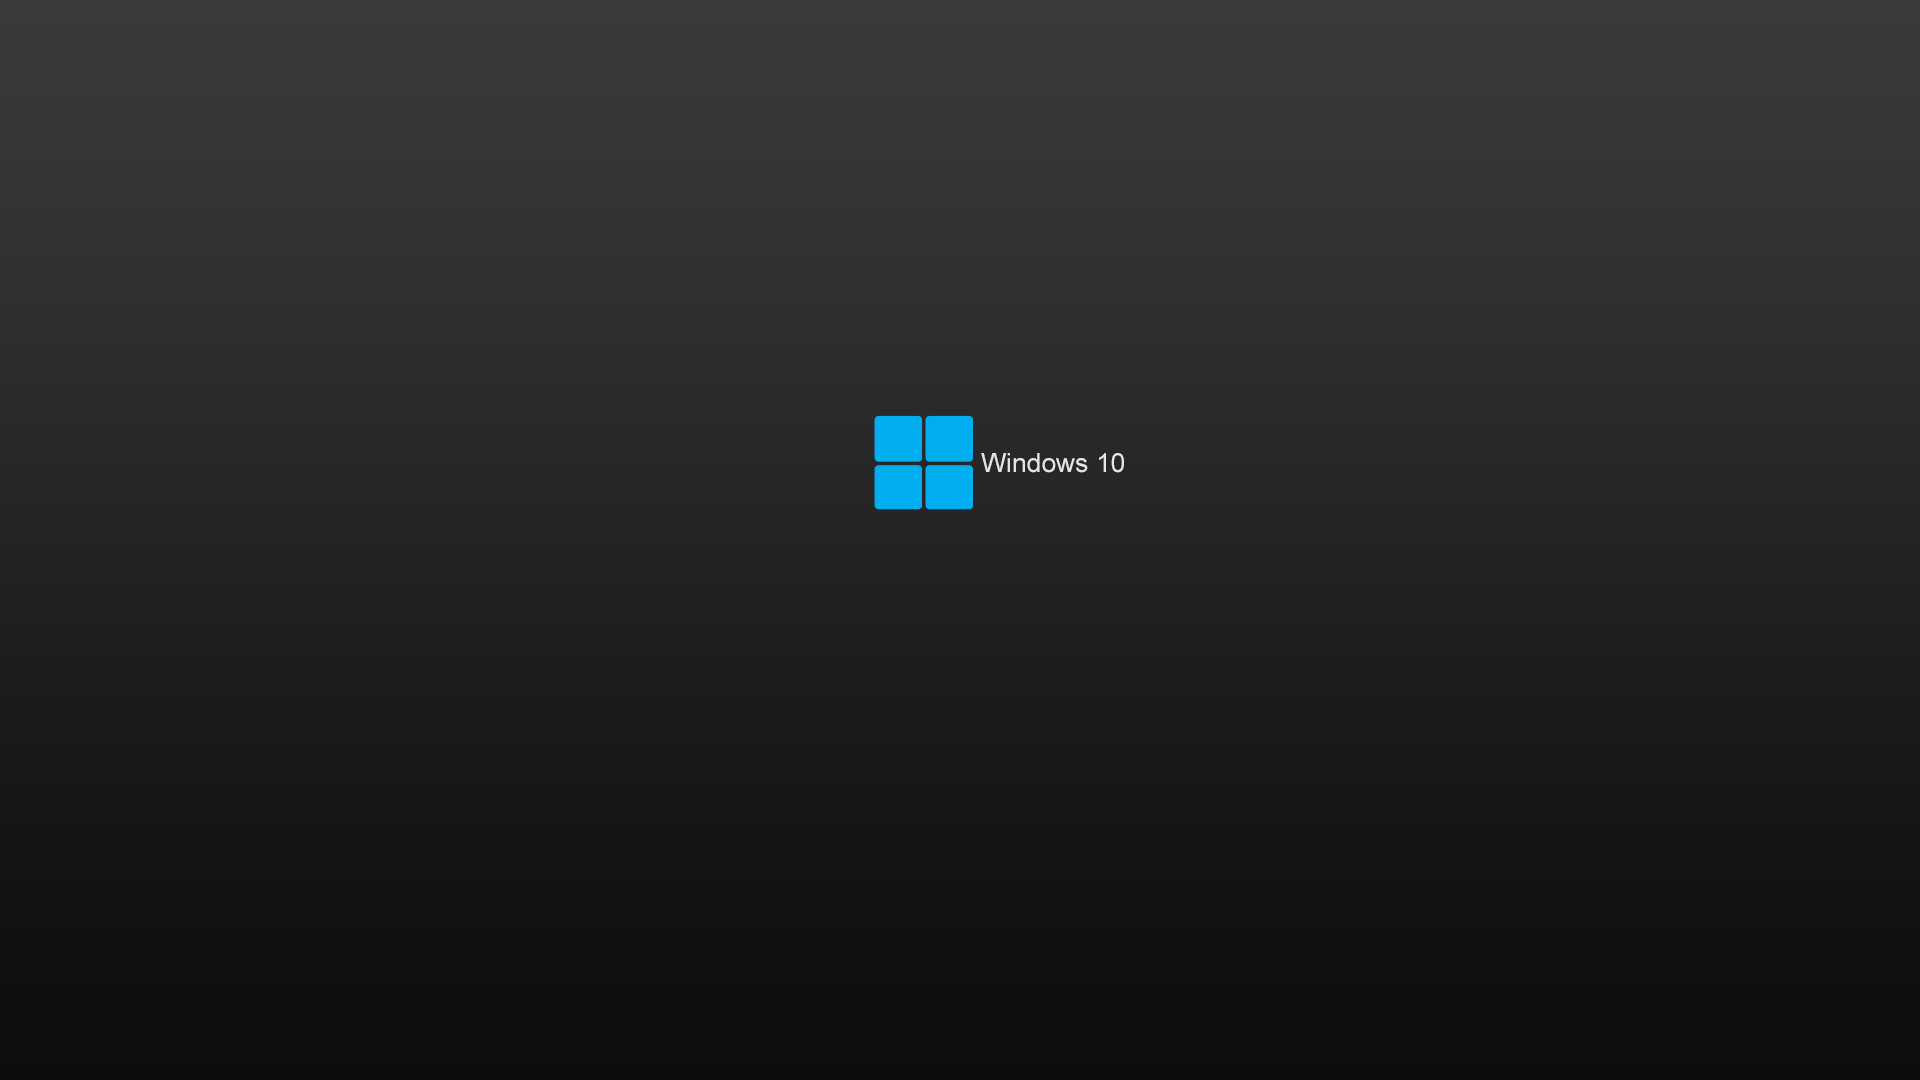 Windows 10 black wallpaper 67 images for Black wallpaper full hd